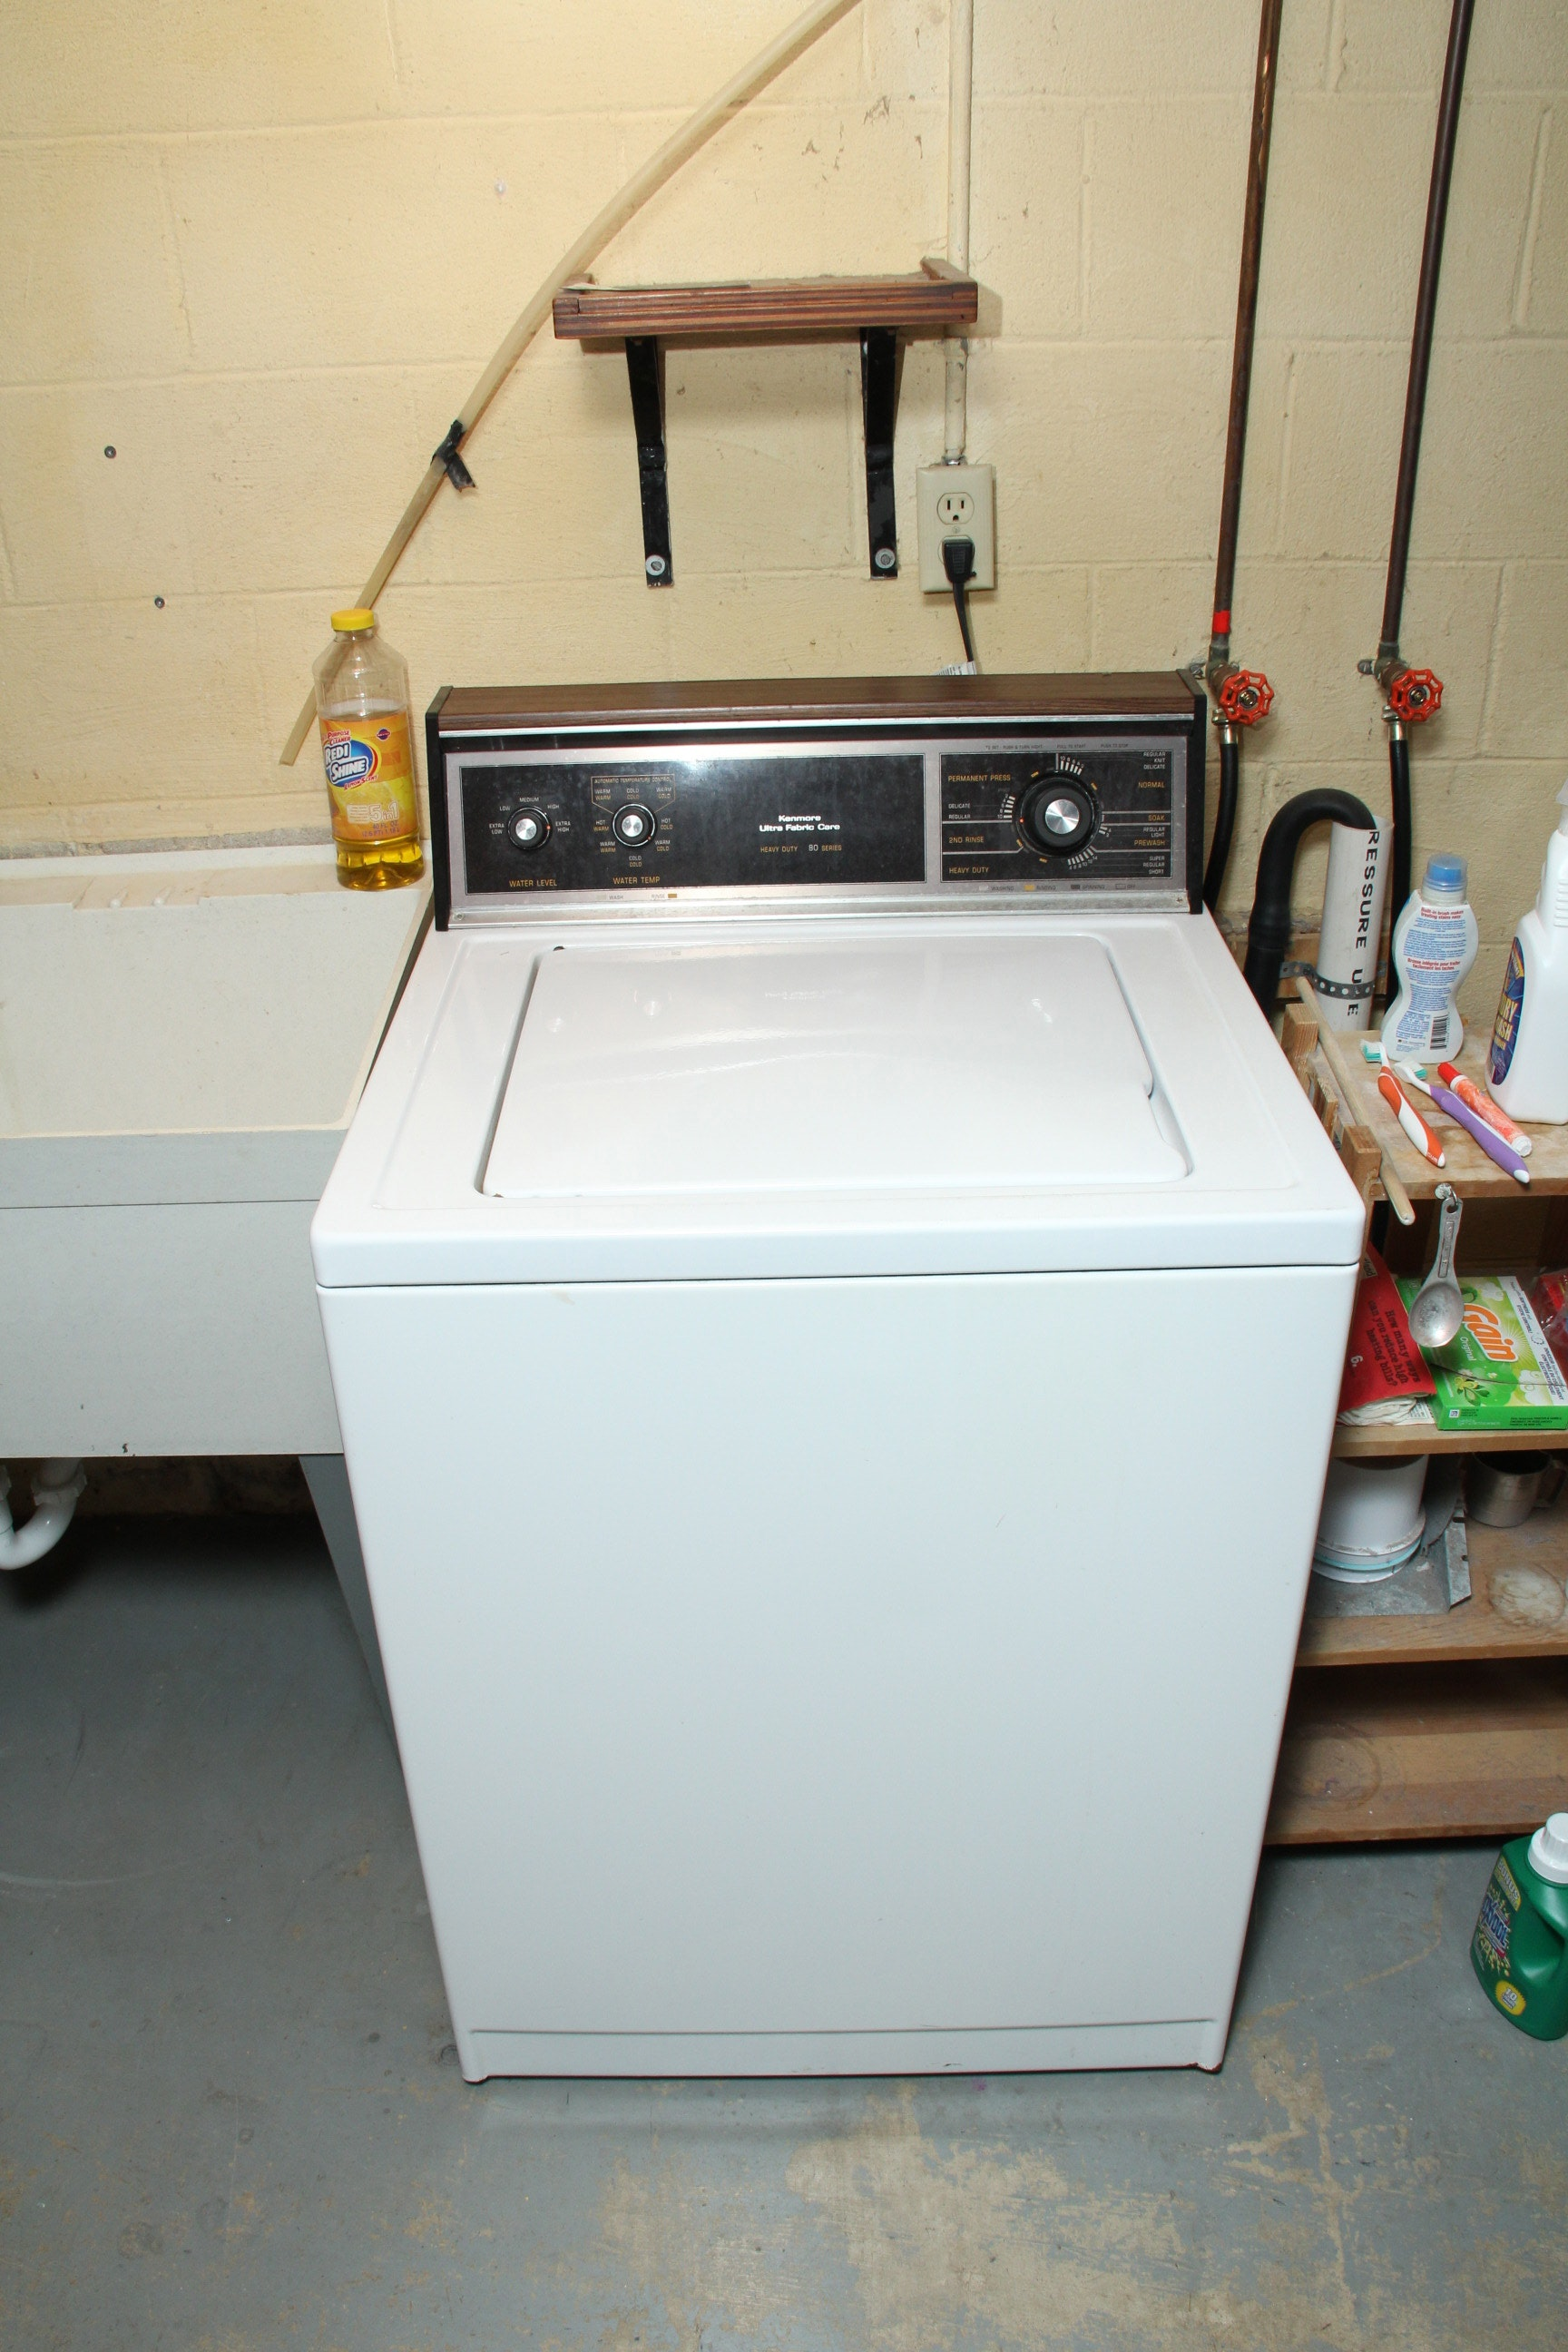 Find great deals on eBay for washing machines sears. Shop with confidence.